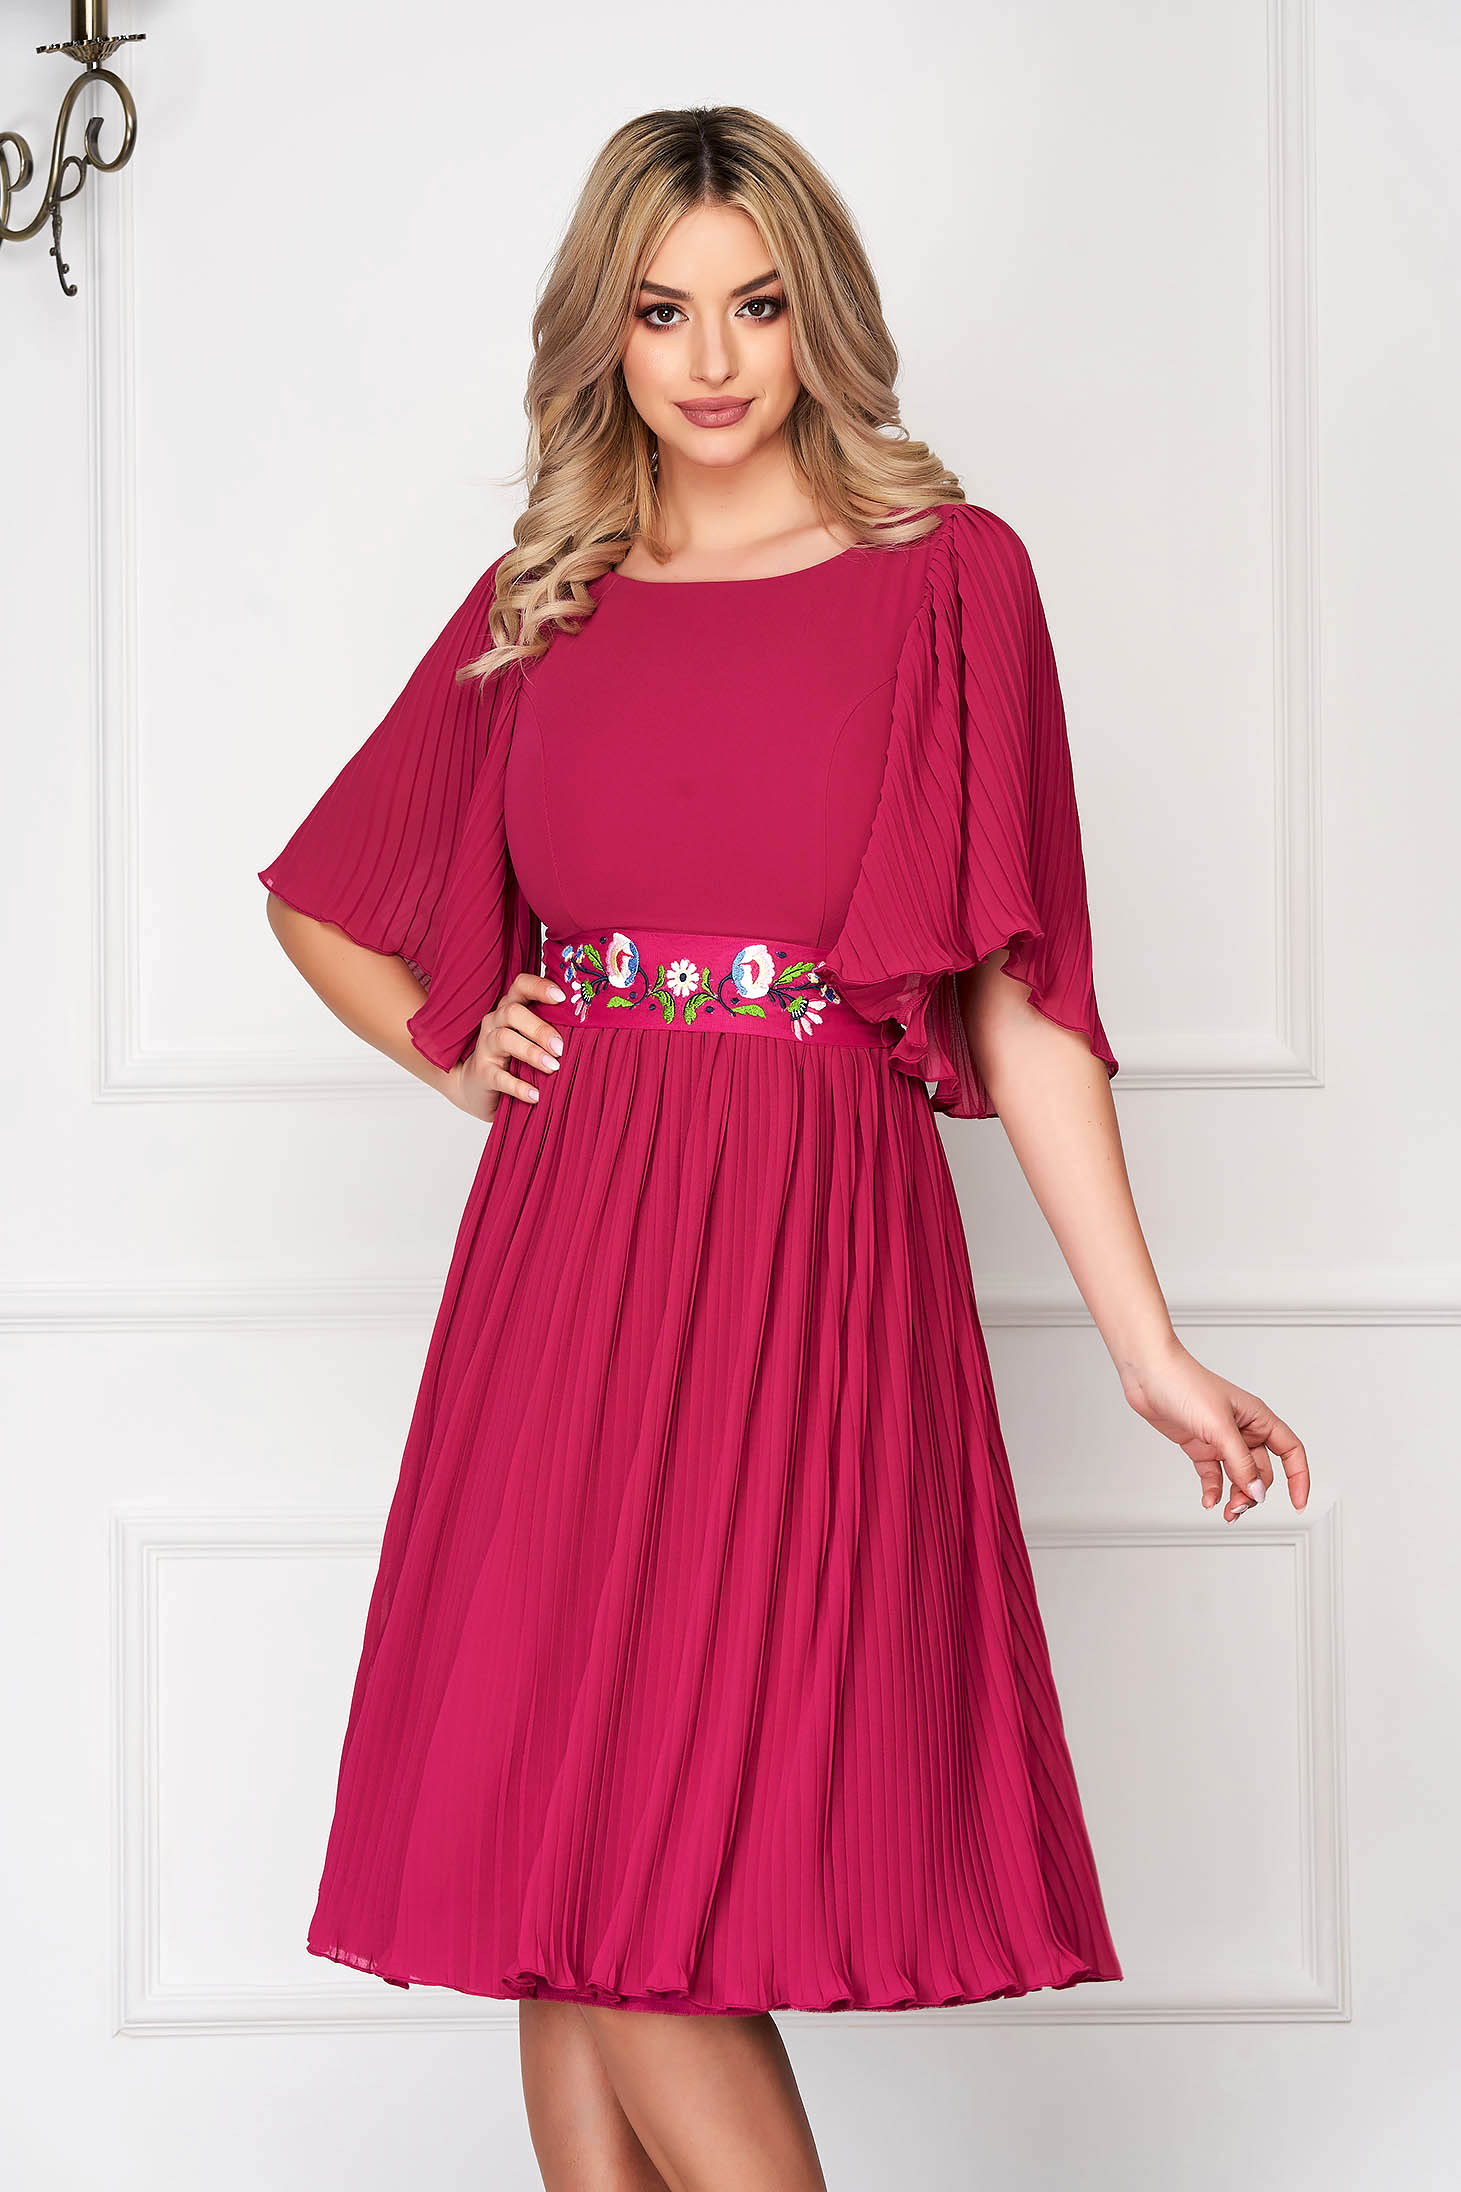 Dress StarShinerS raspberry elegant midi from veil fabric folded up detachable cord